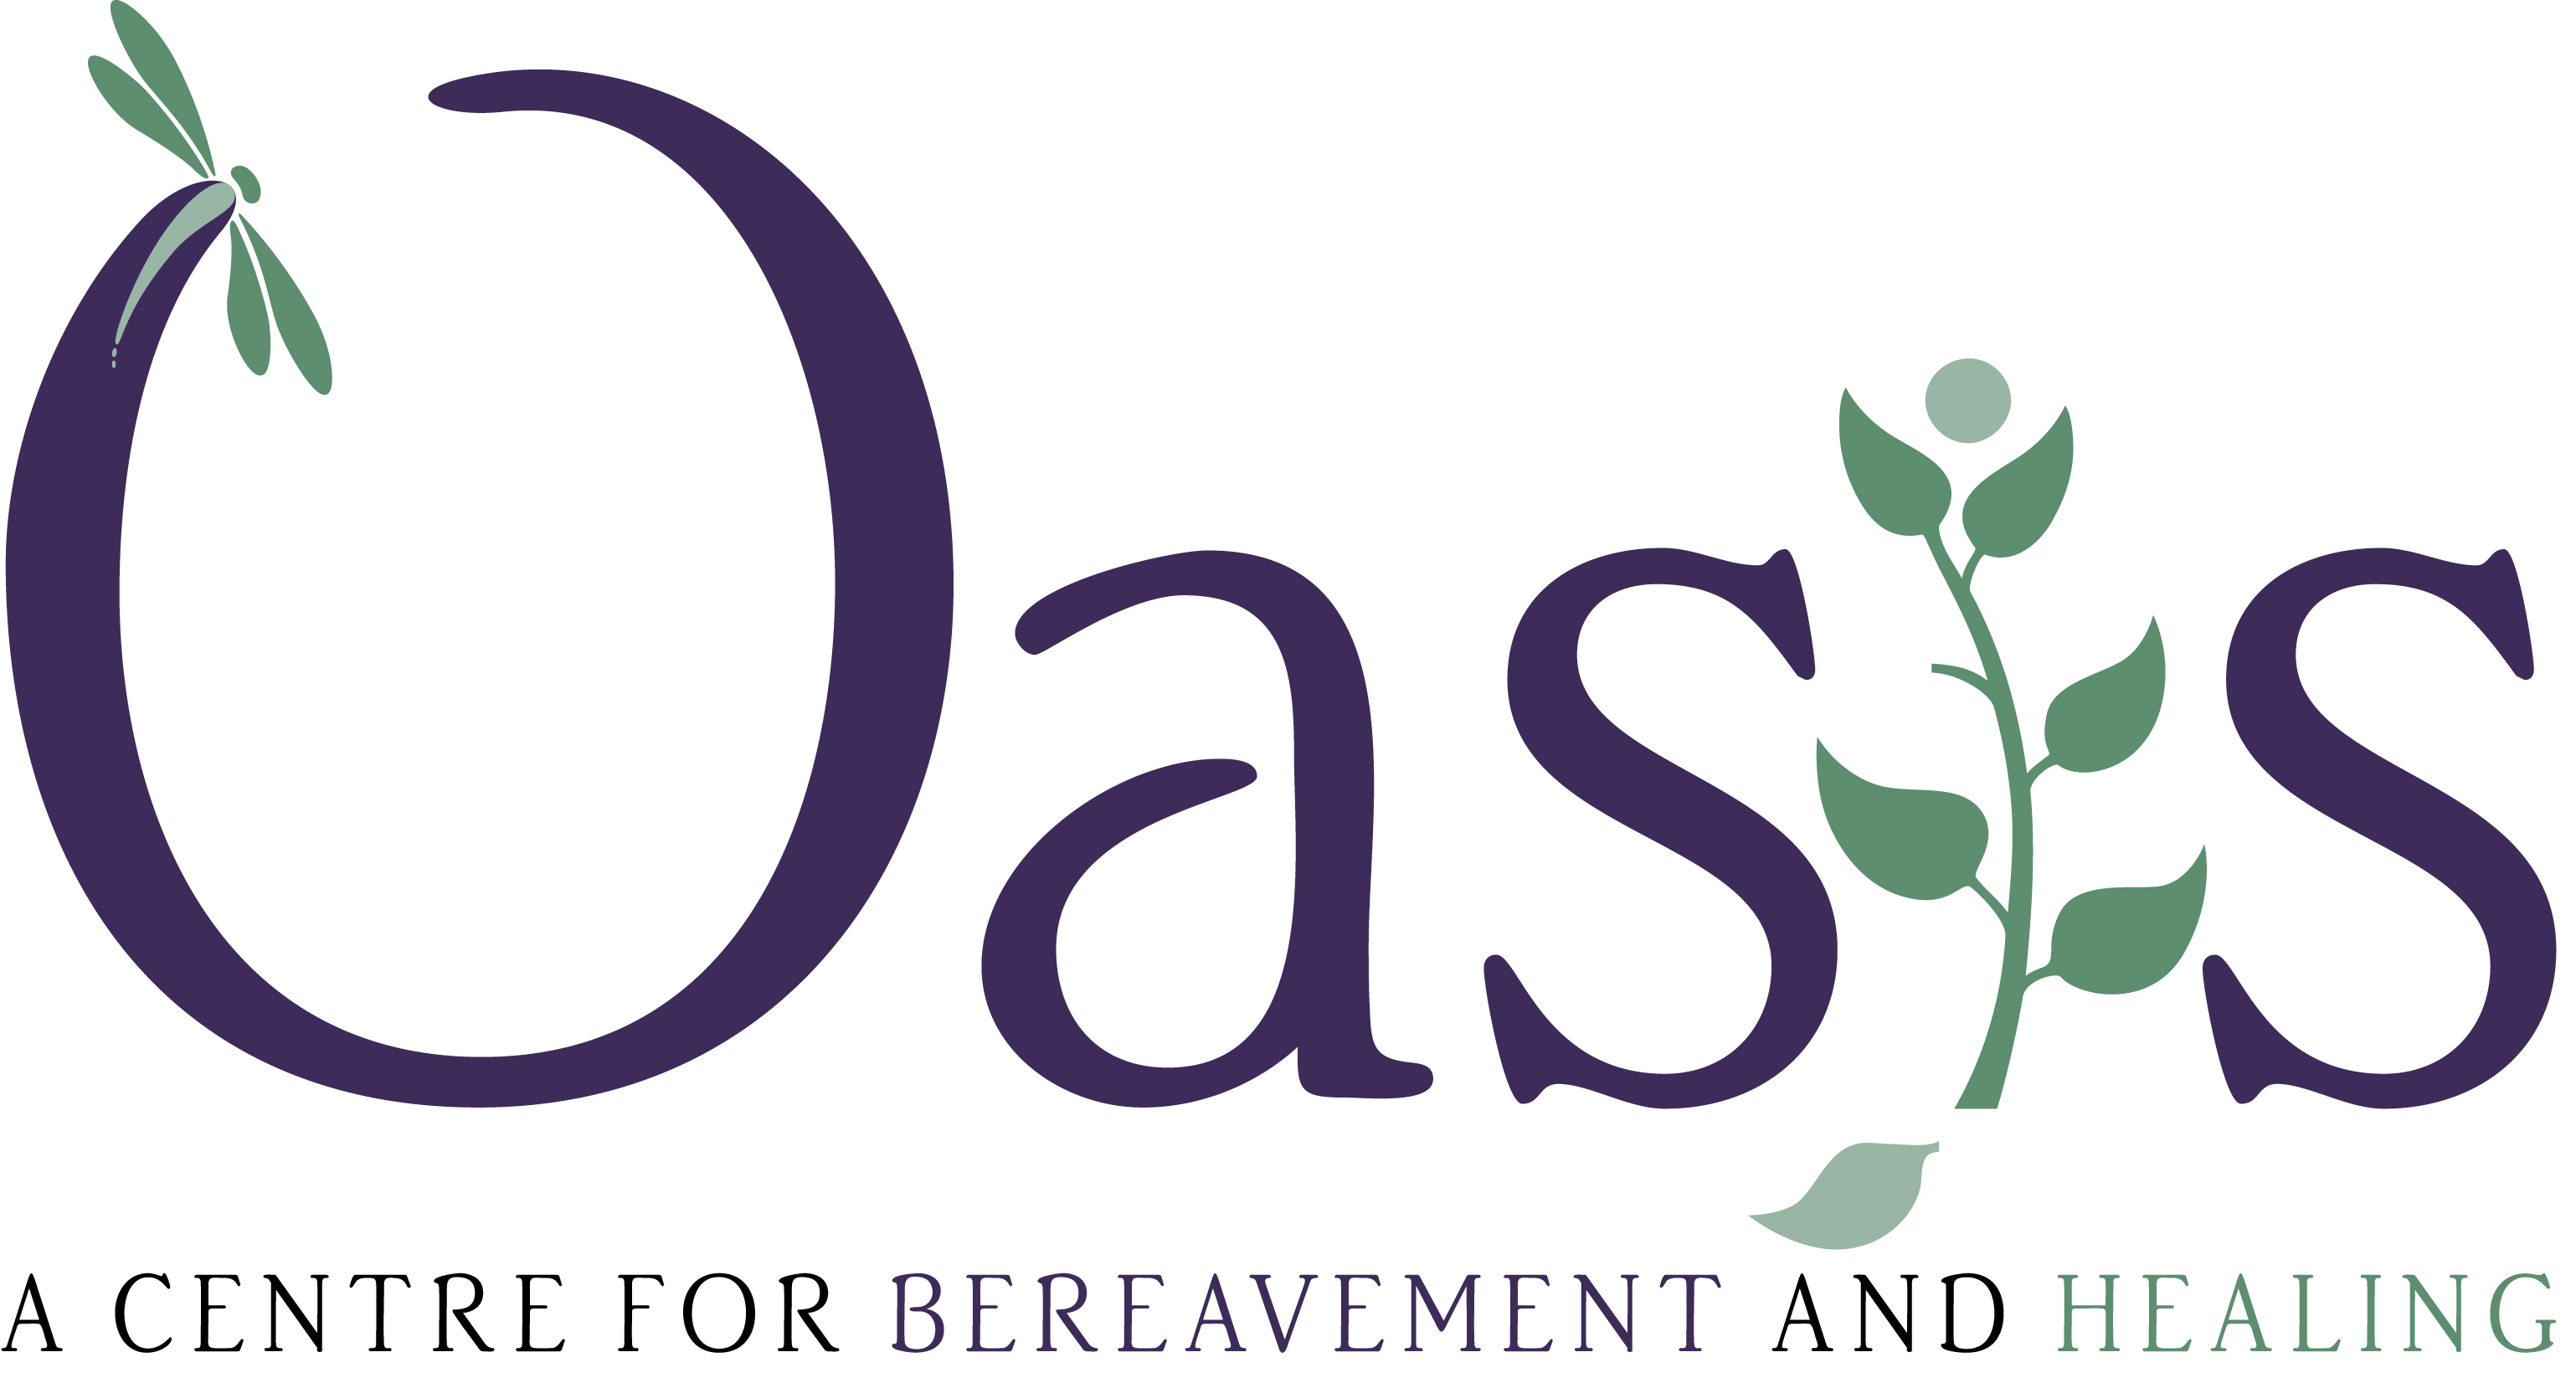 Oasis: A Centre for Bereavement and Healing